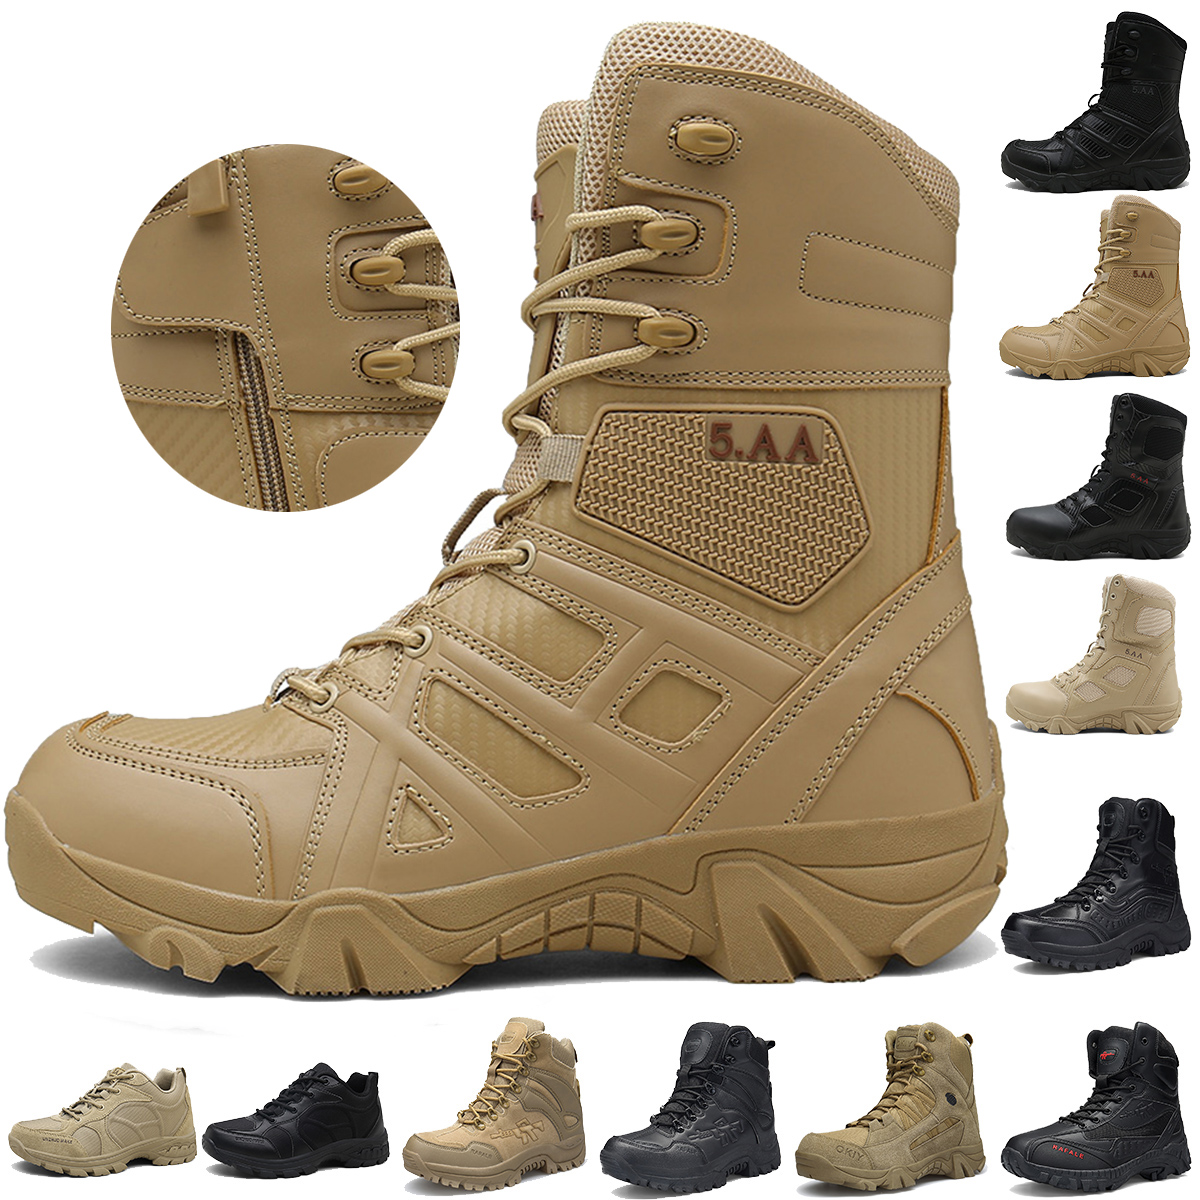 Cungel Work-Shoes Snow-Boots Ankle-Boats Desert-Combat Special Army Tactical Autumn Winter title=